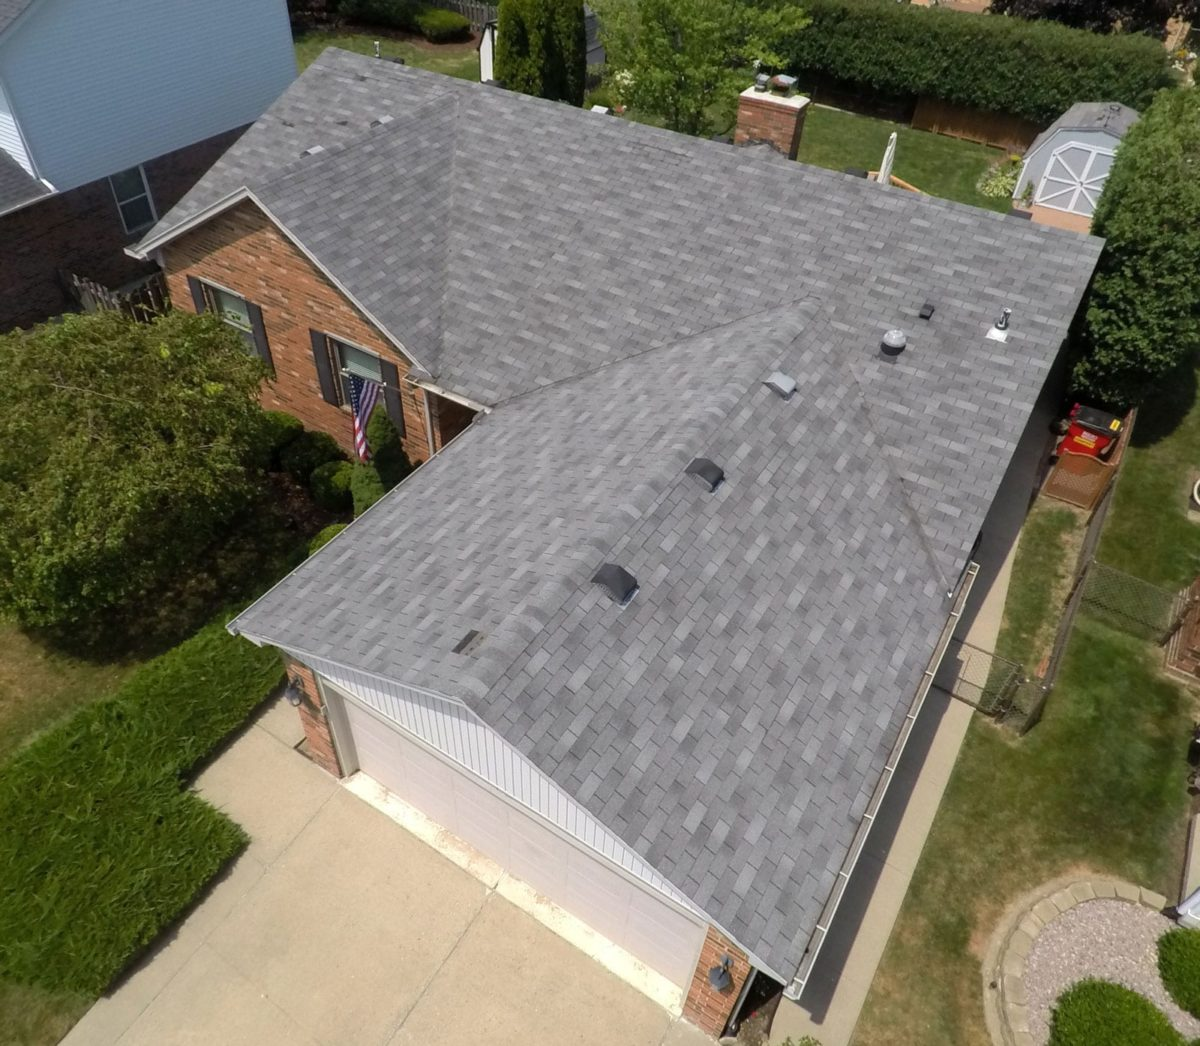 Macomb roofing replacement - Right Before Install